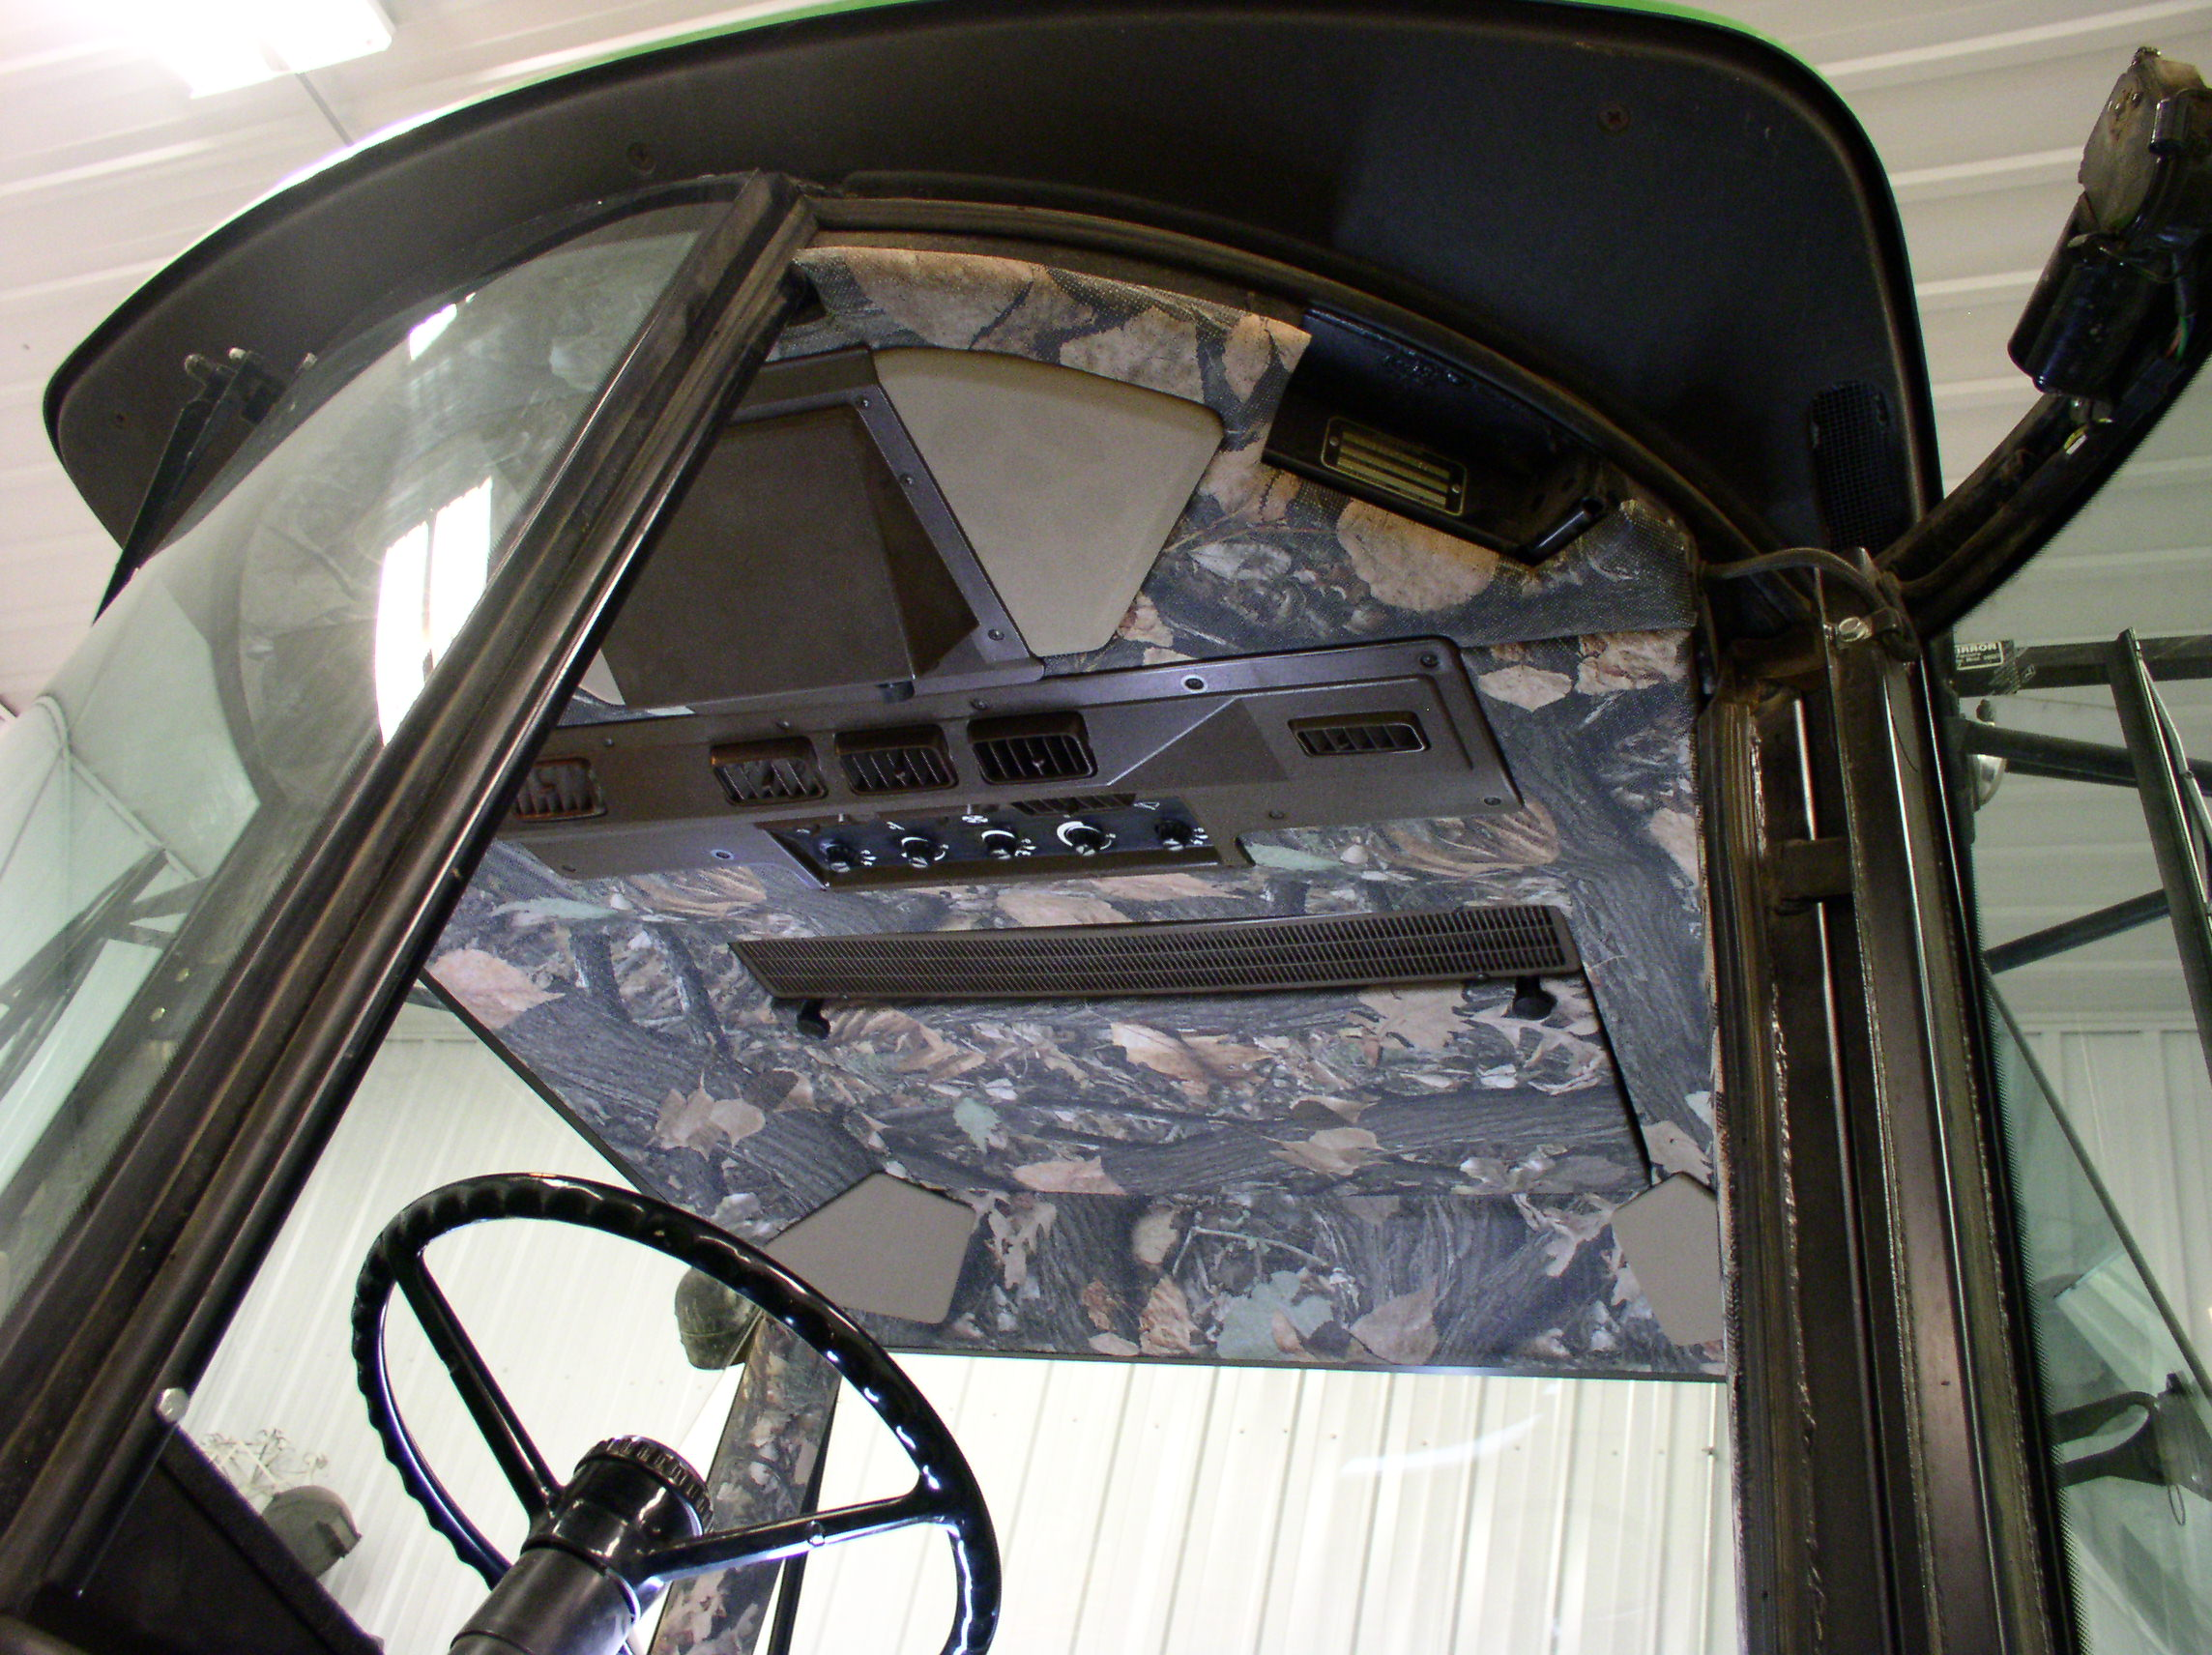 Camouflage Cab Kits A New Option To Personalize Your